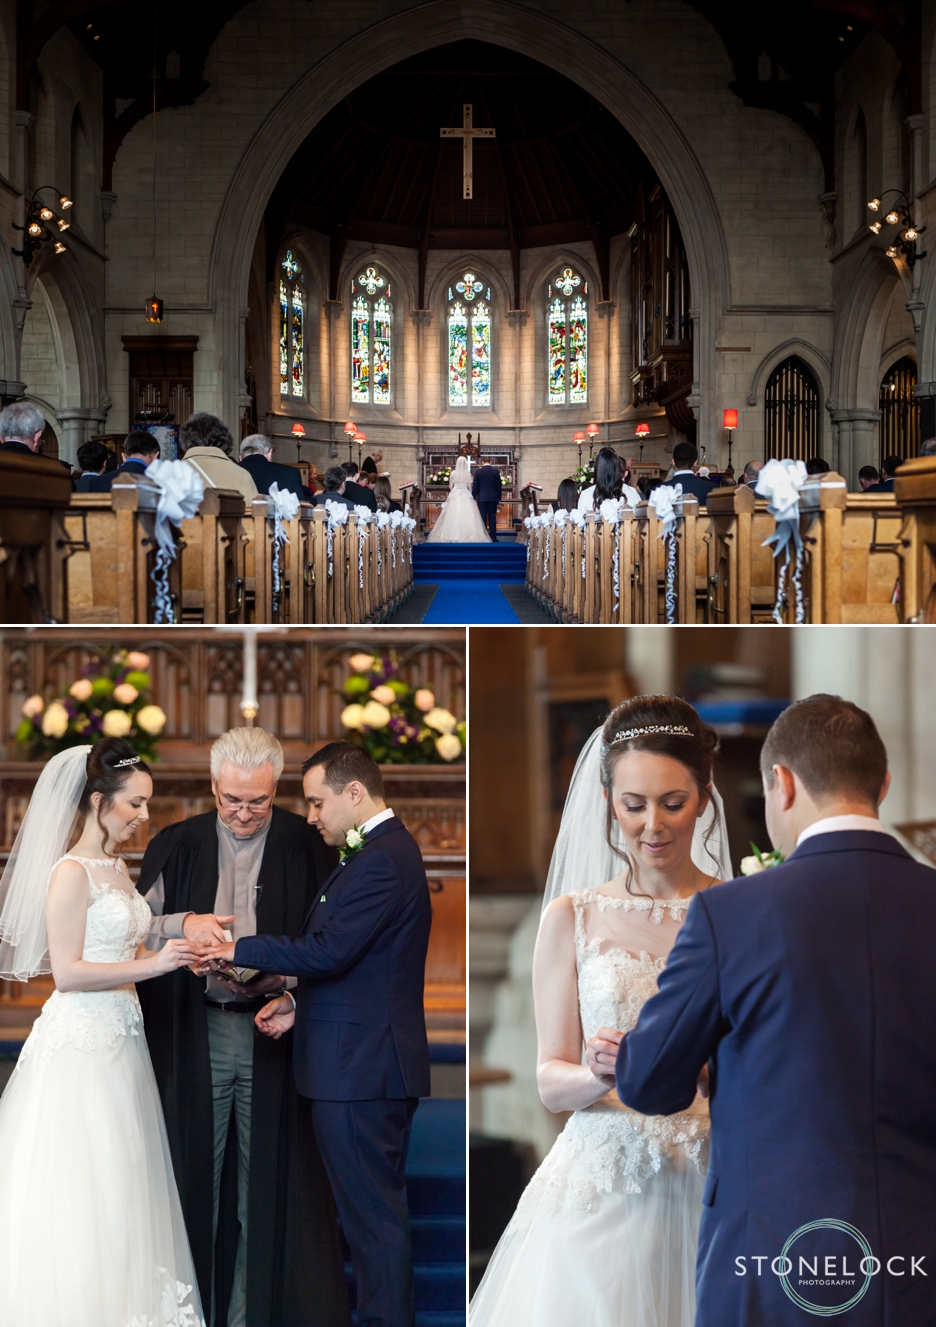 The wedding ceremony at Trinity Church in Sutton